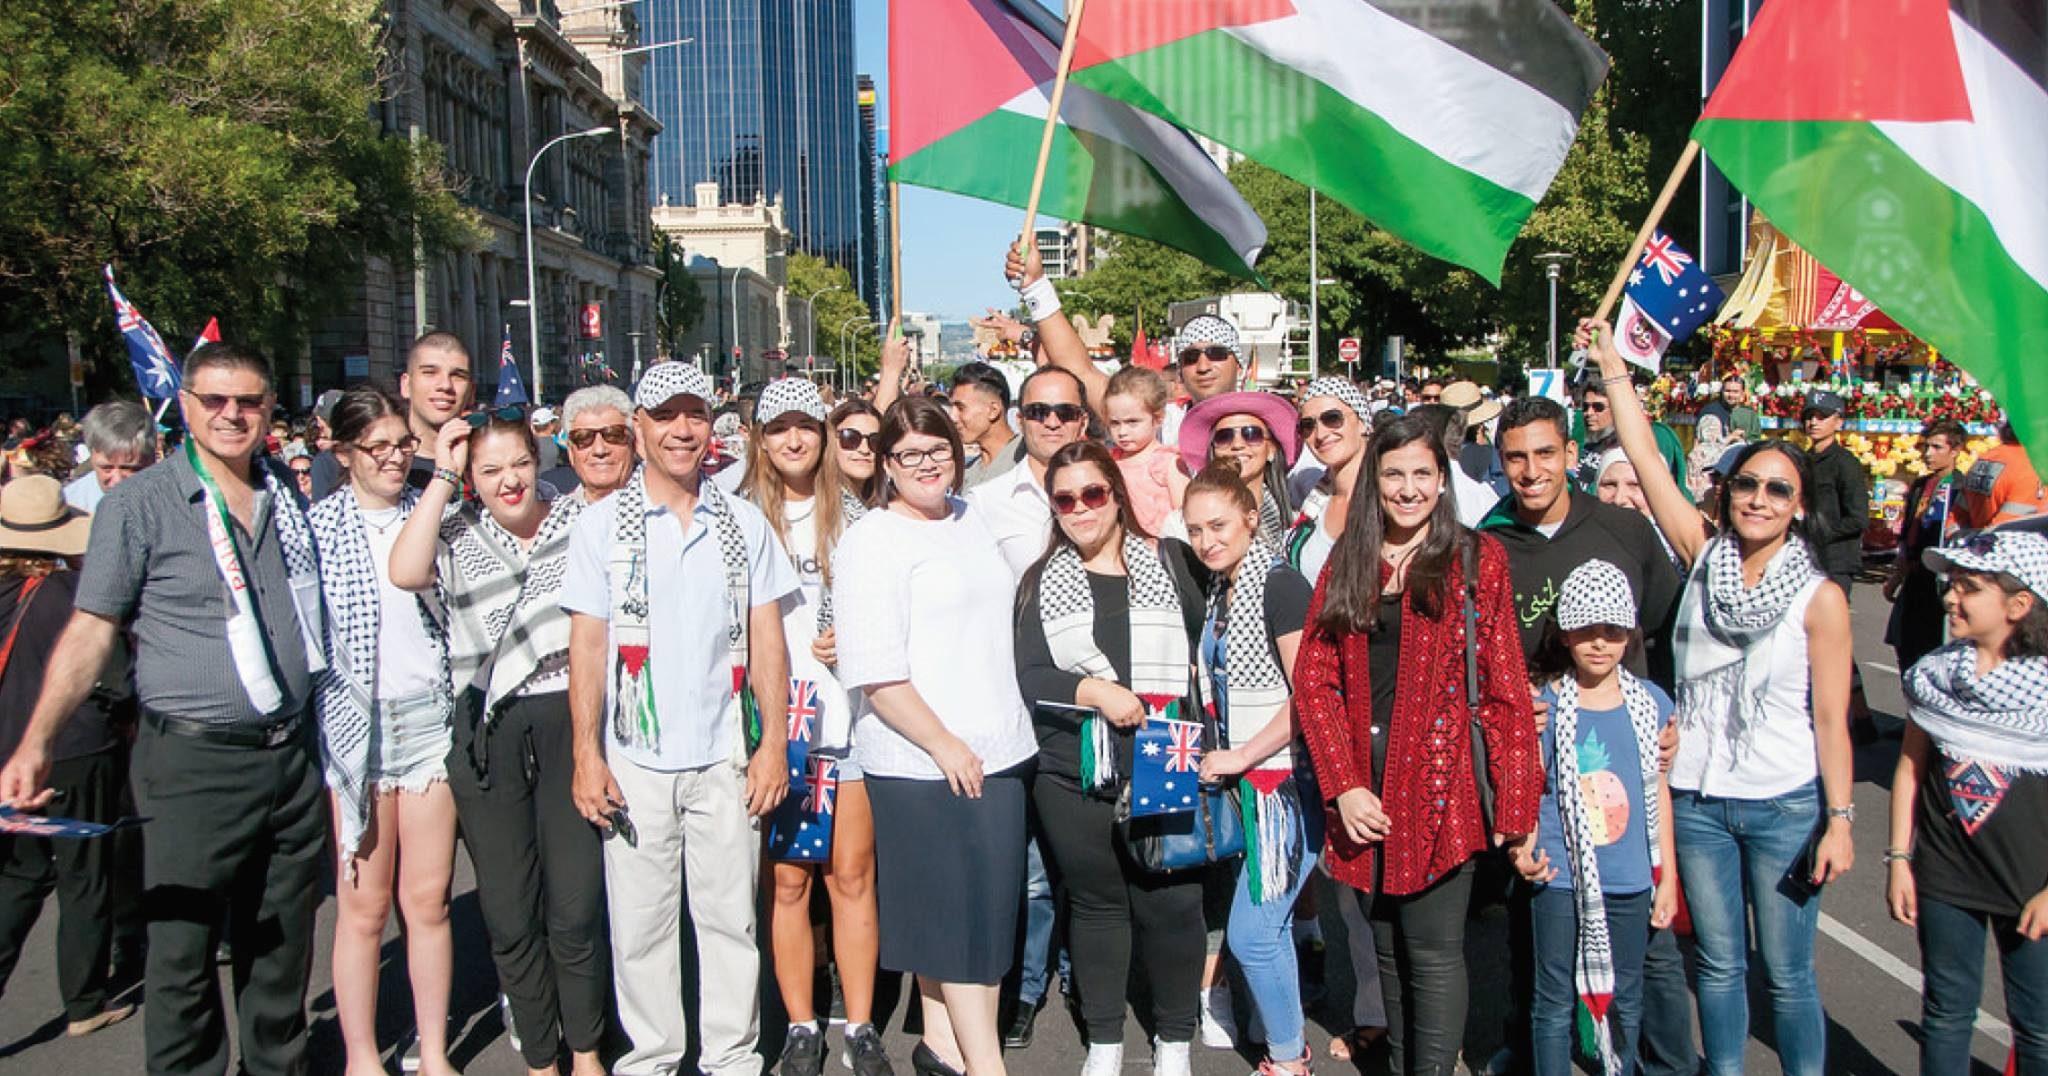 The Palestinian community at last year's Australia Day Parade in Adelaide. [Photo: Glimmer of Hope]